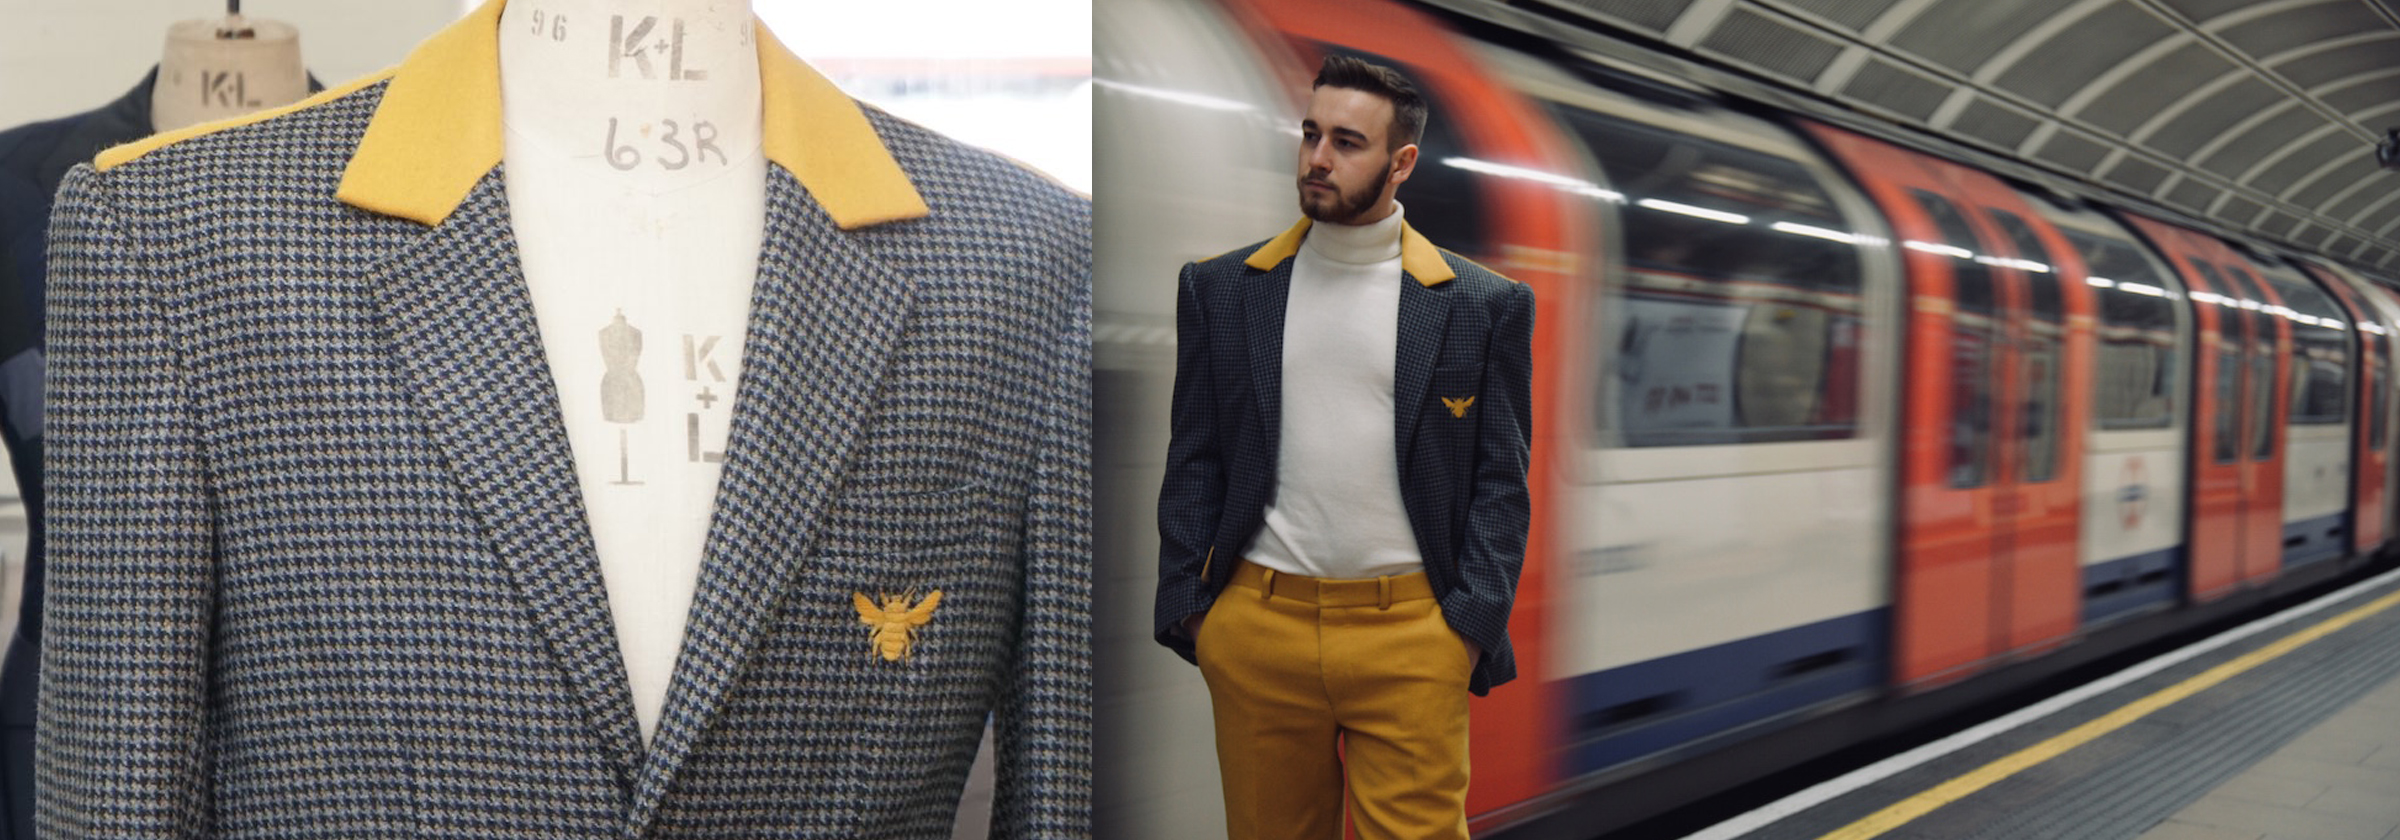 Meet the bespoke tailoring winners of a recent Scabal project